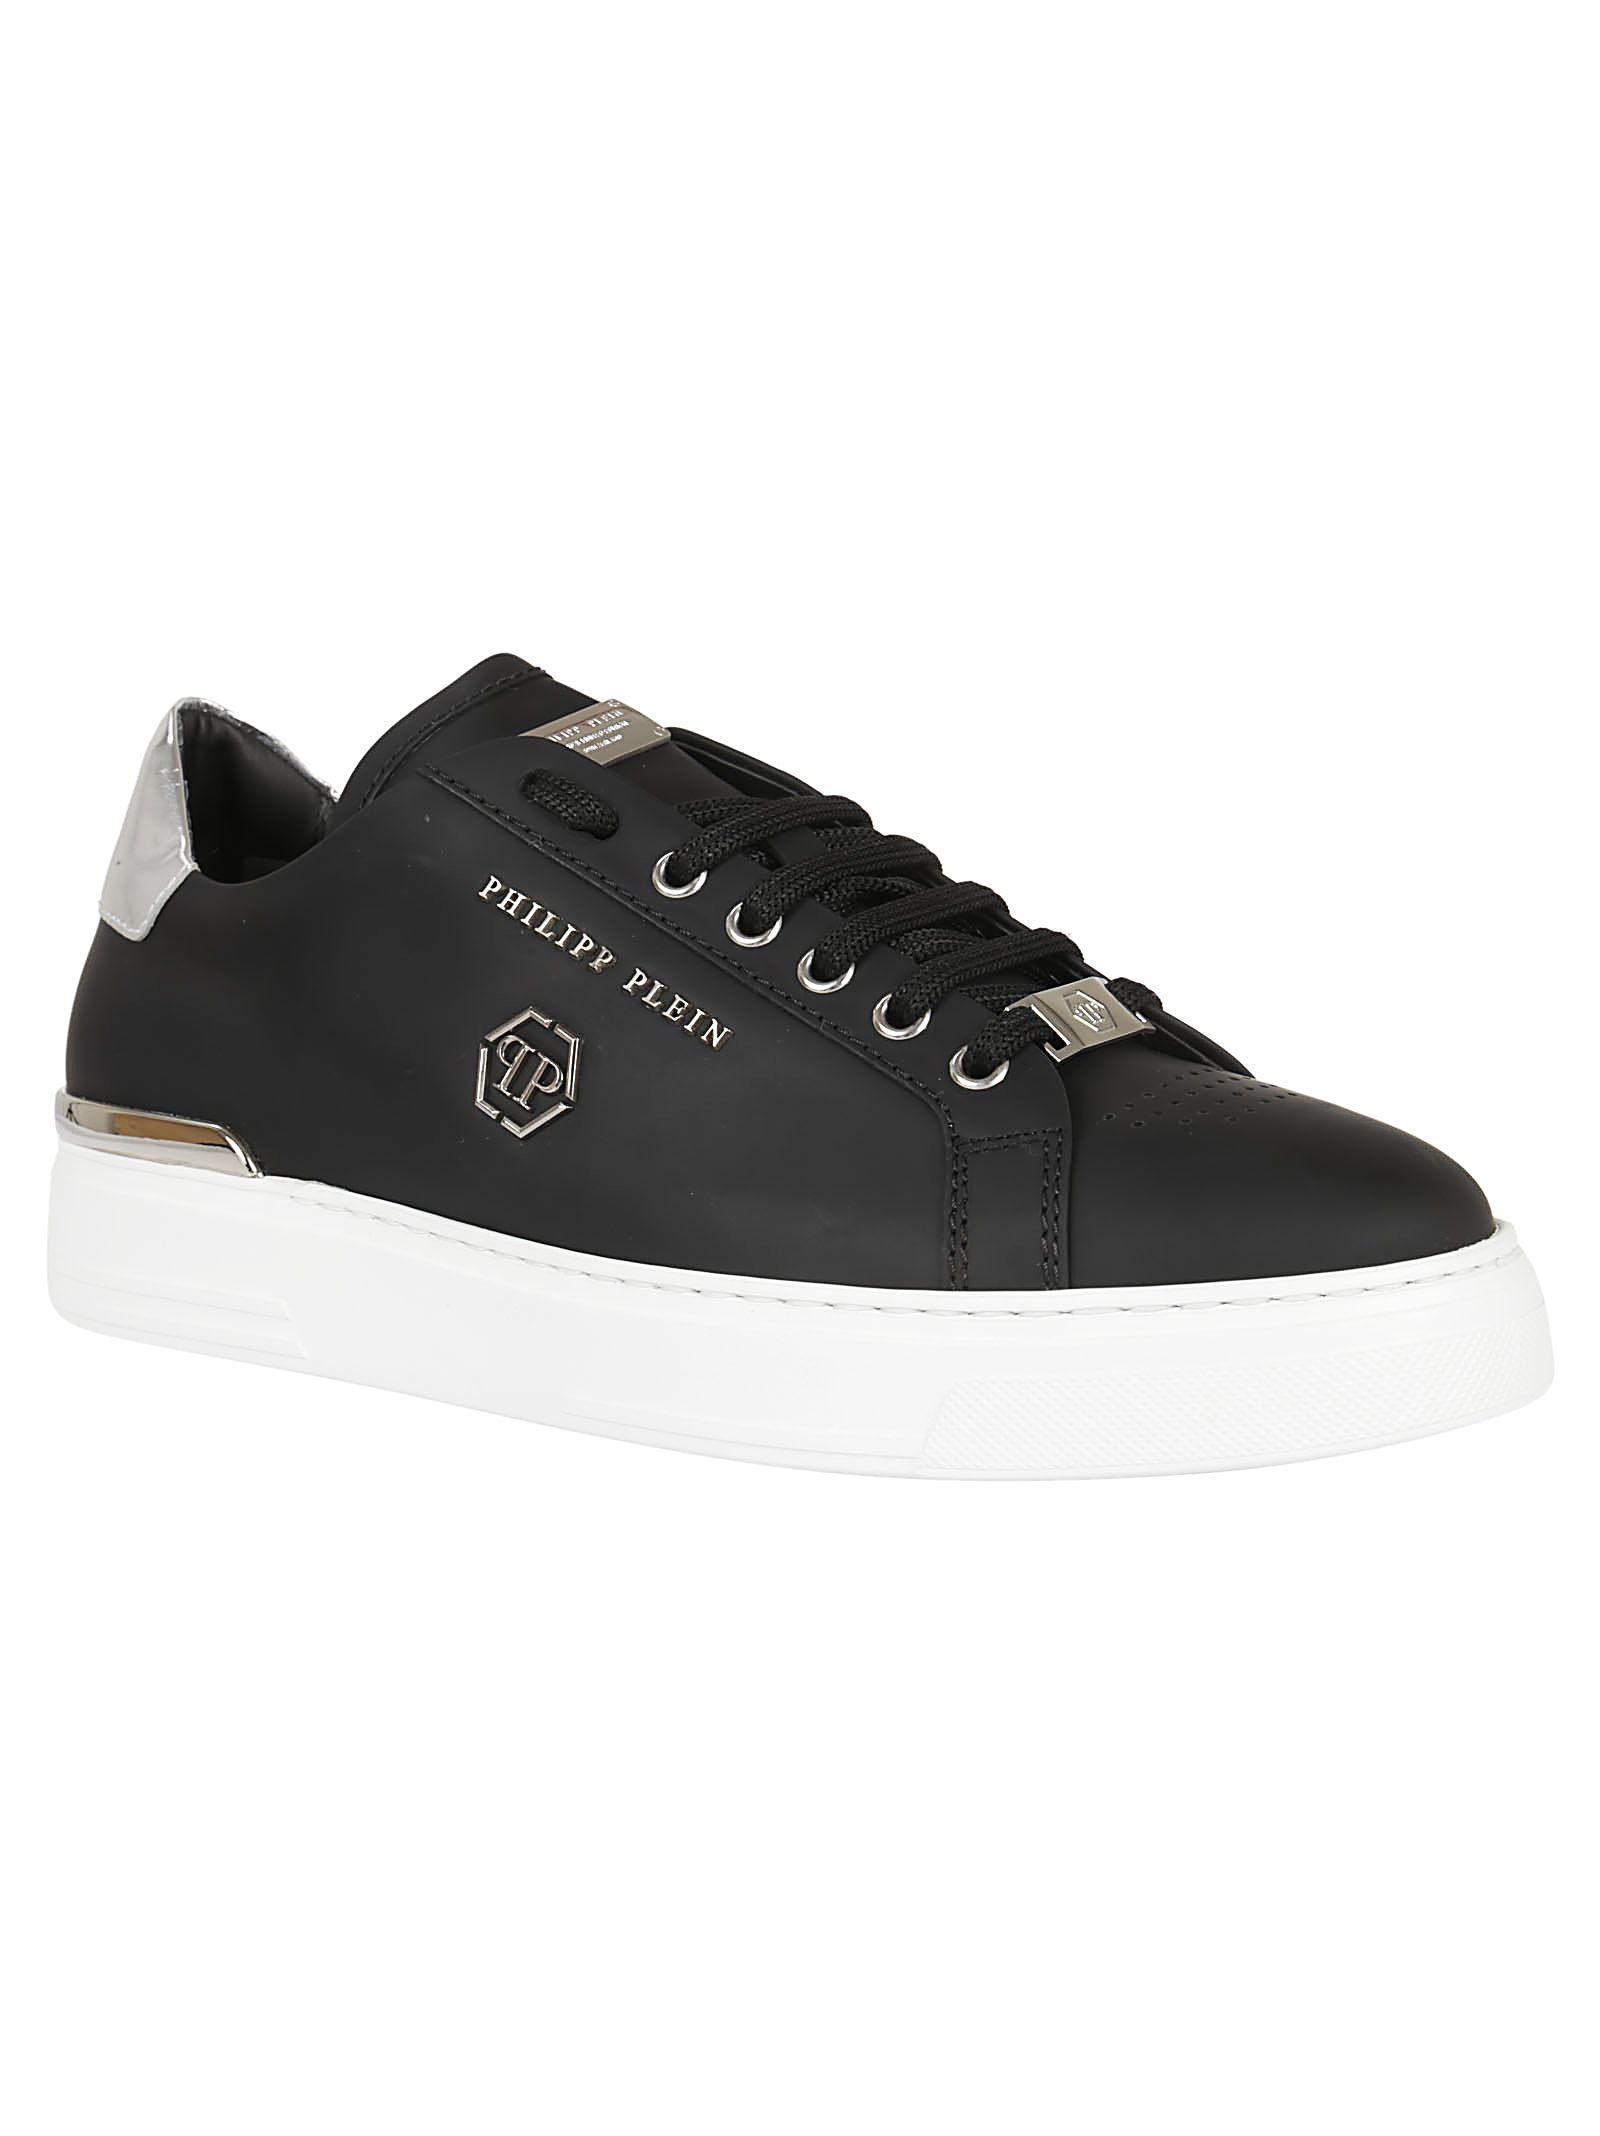 Philipp Plein Over Border sneakers shop cheap price 5Sqd1b